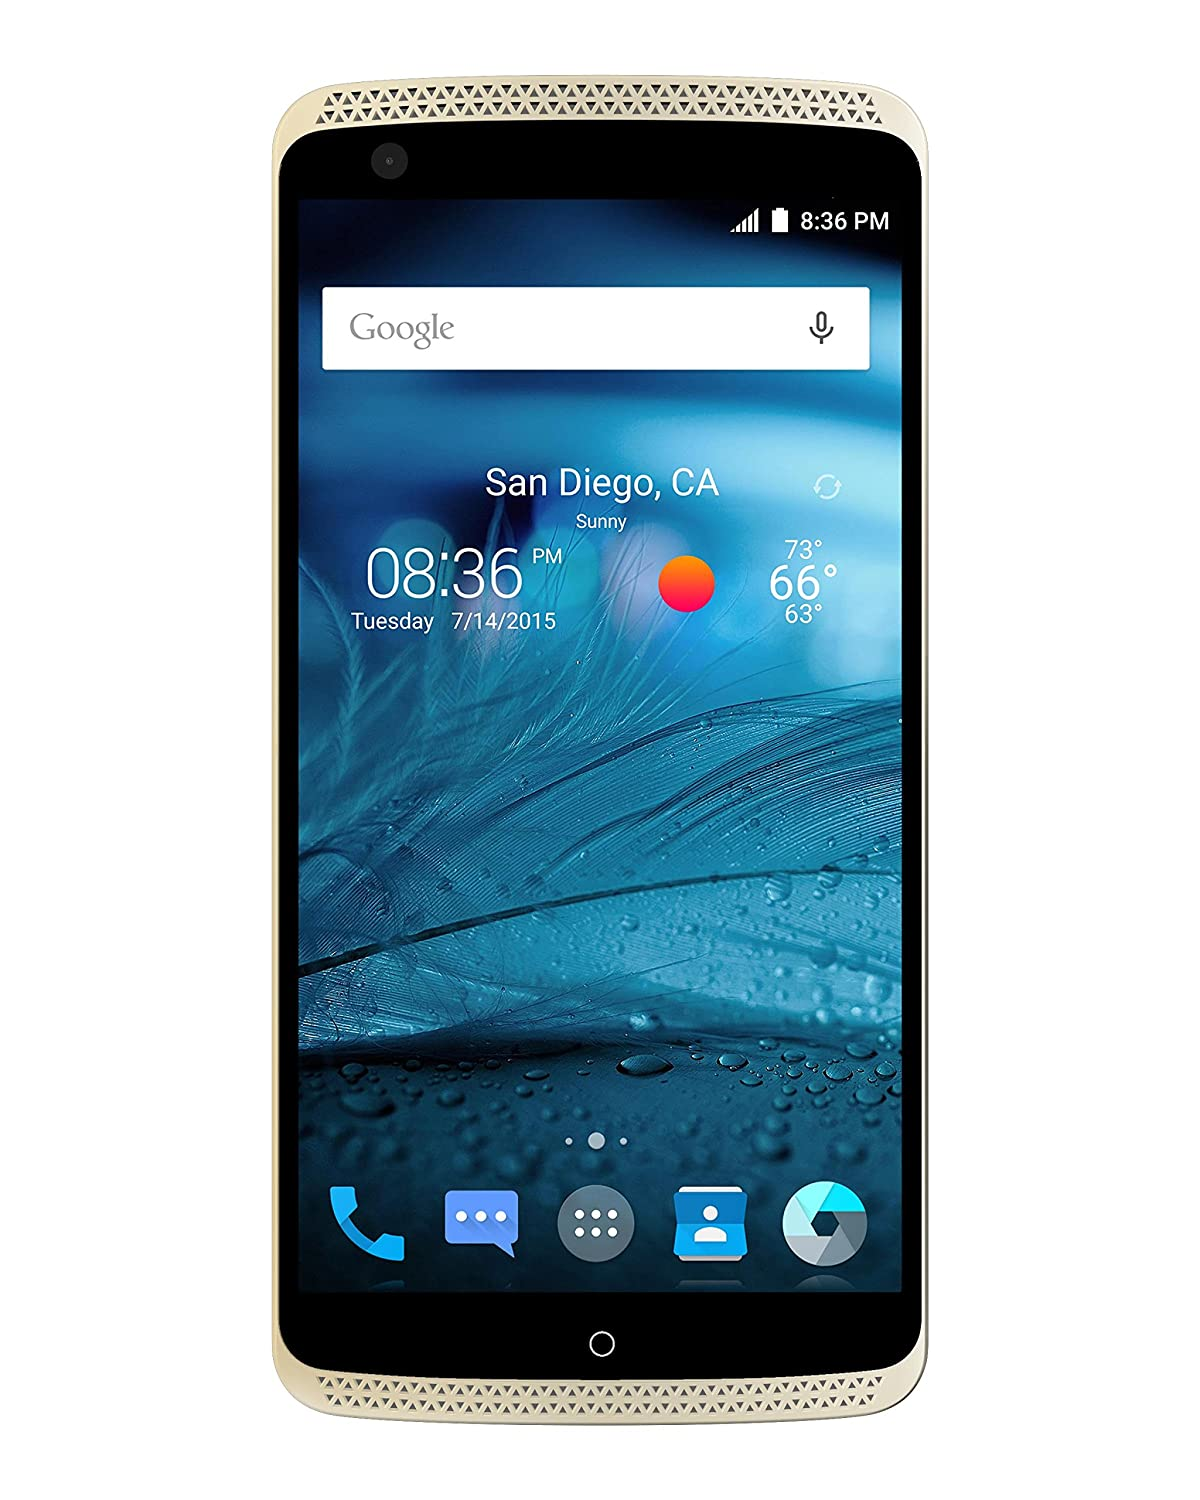 zte axon pro uk could anybody wishing